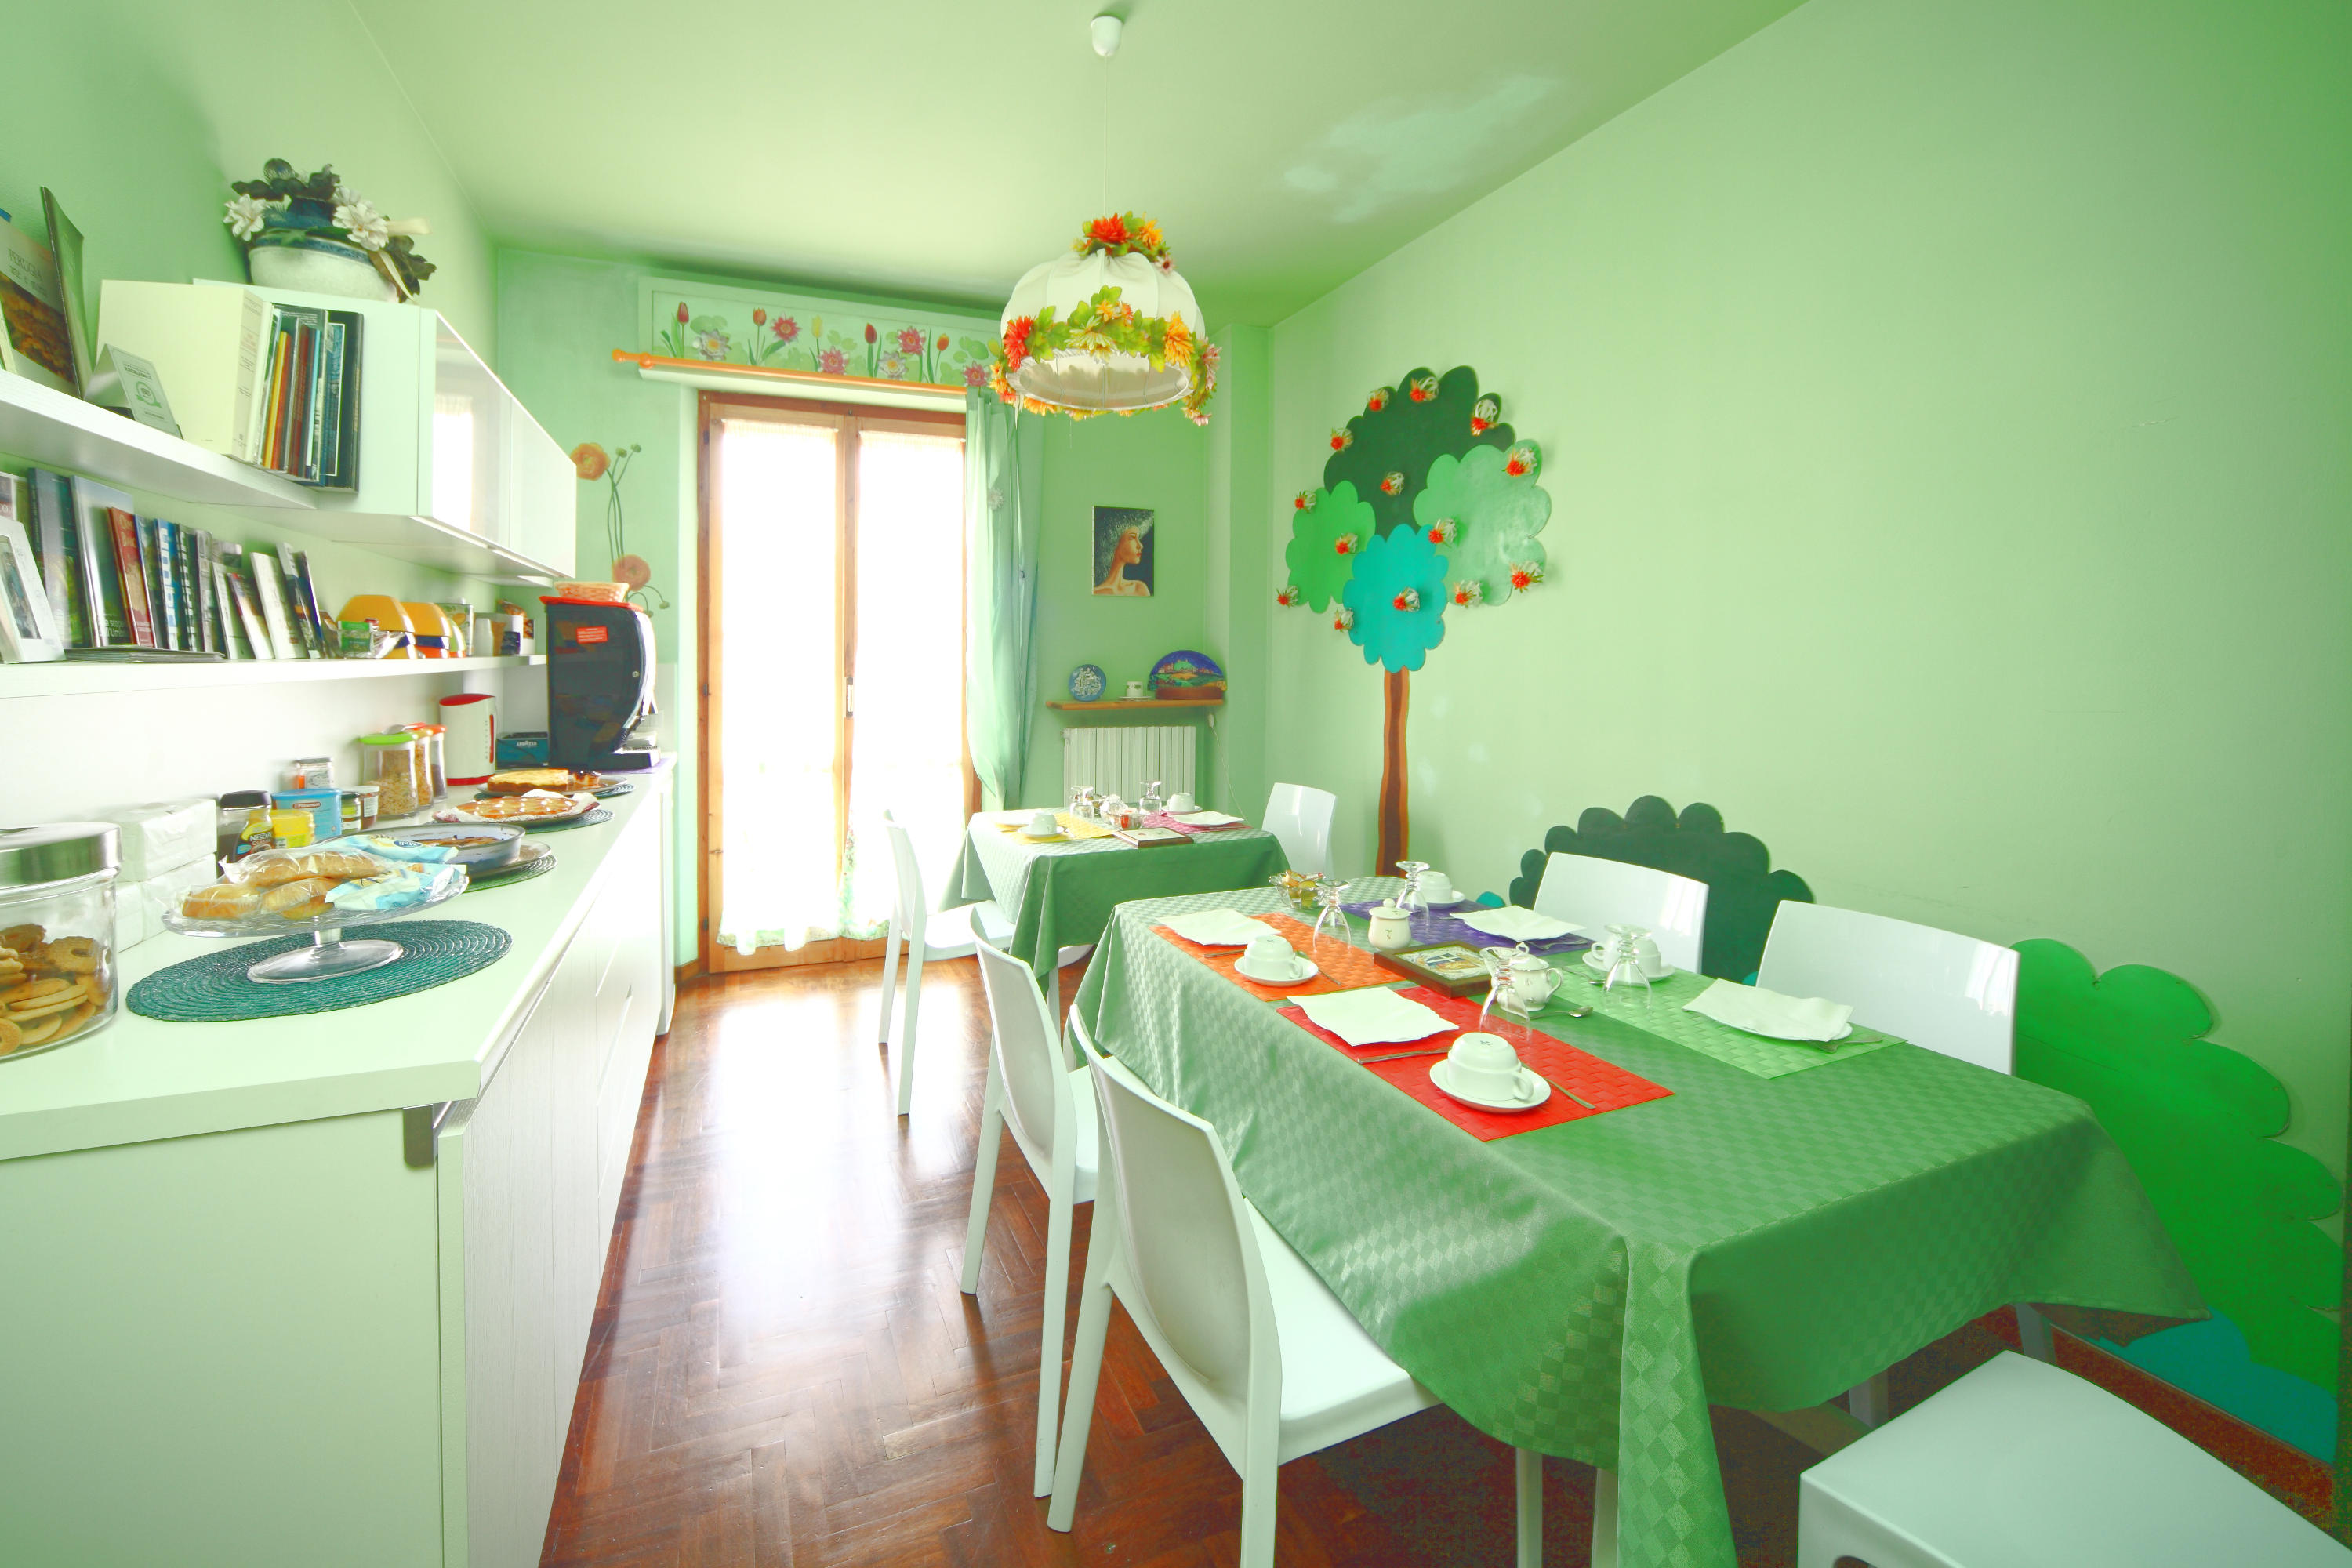 Bed breakfast francesco in assisi for Casa costruita